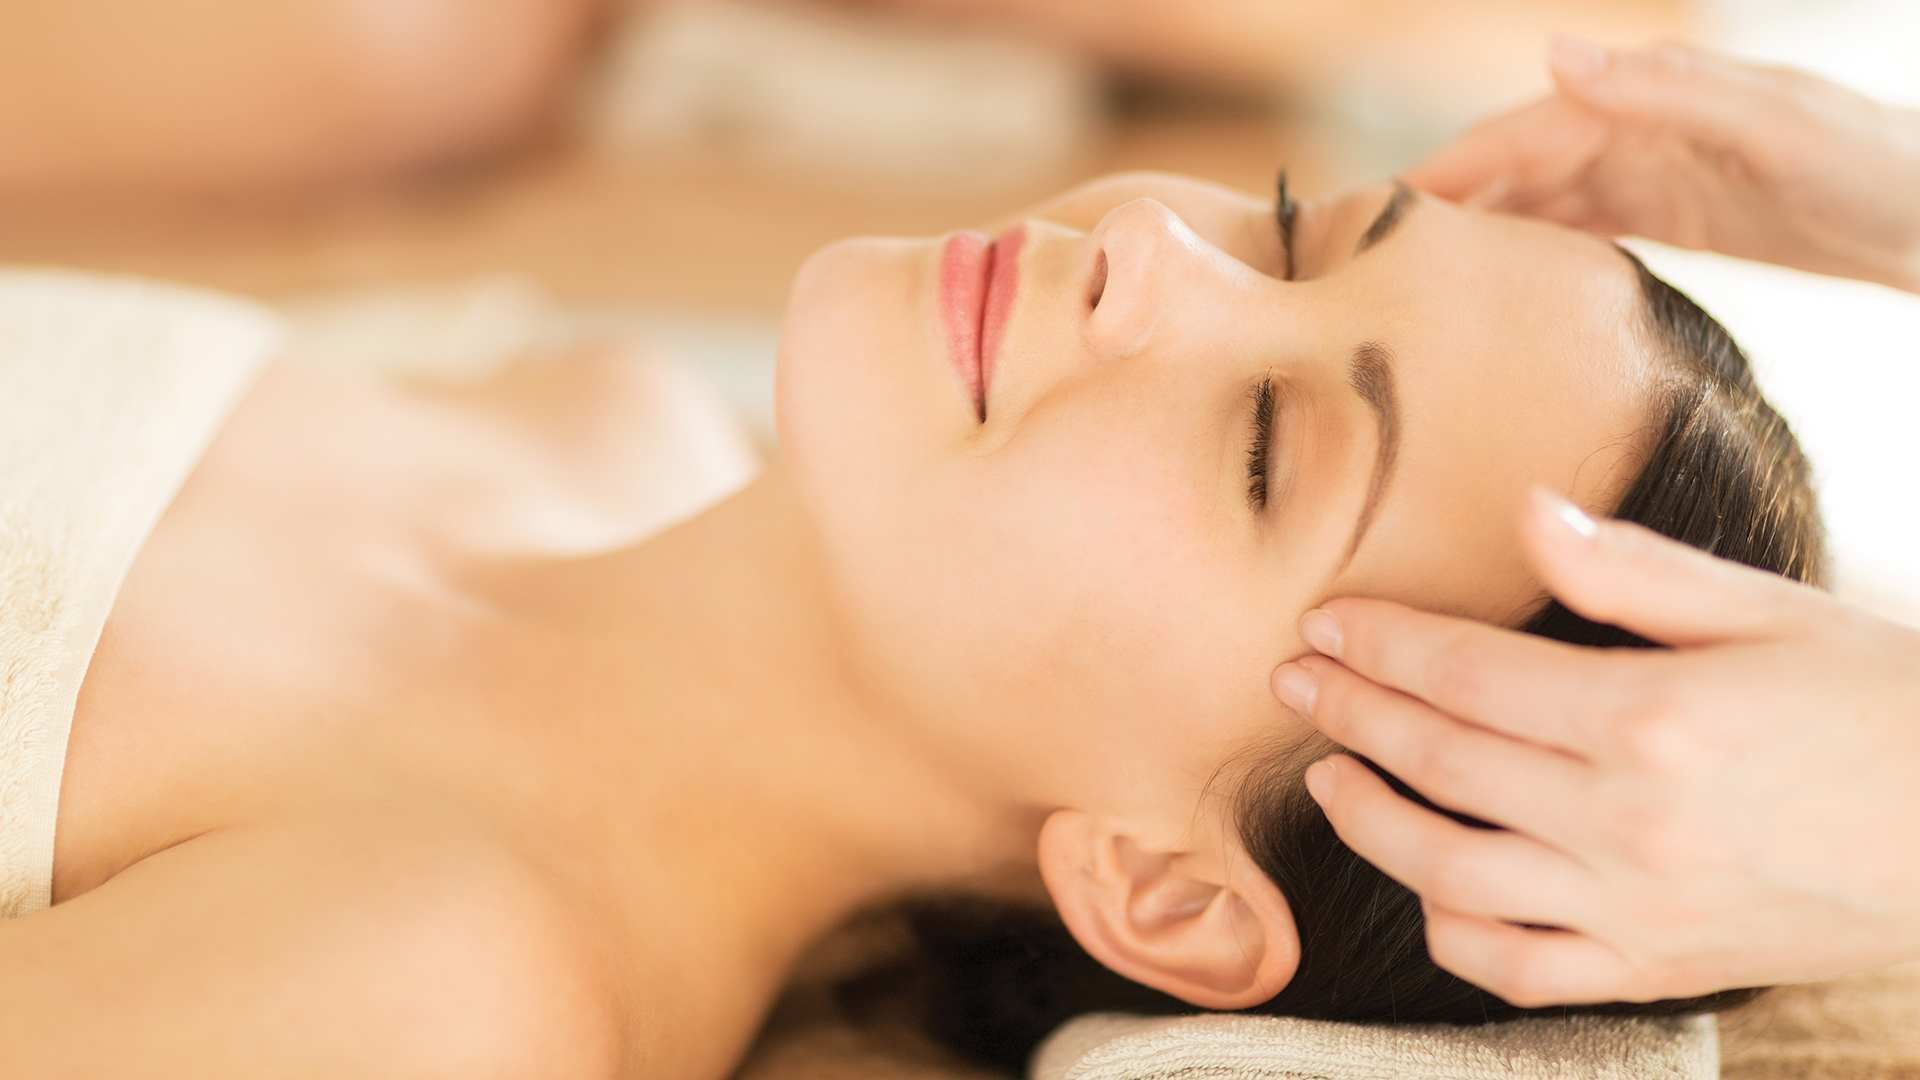 https://www.atmospherespa.gr/wp-content/uploads/2019/04/15454918849849.jpg